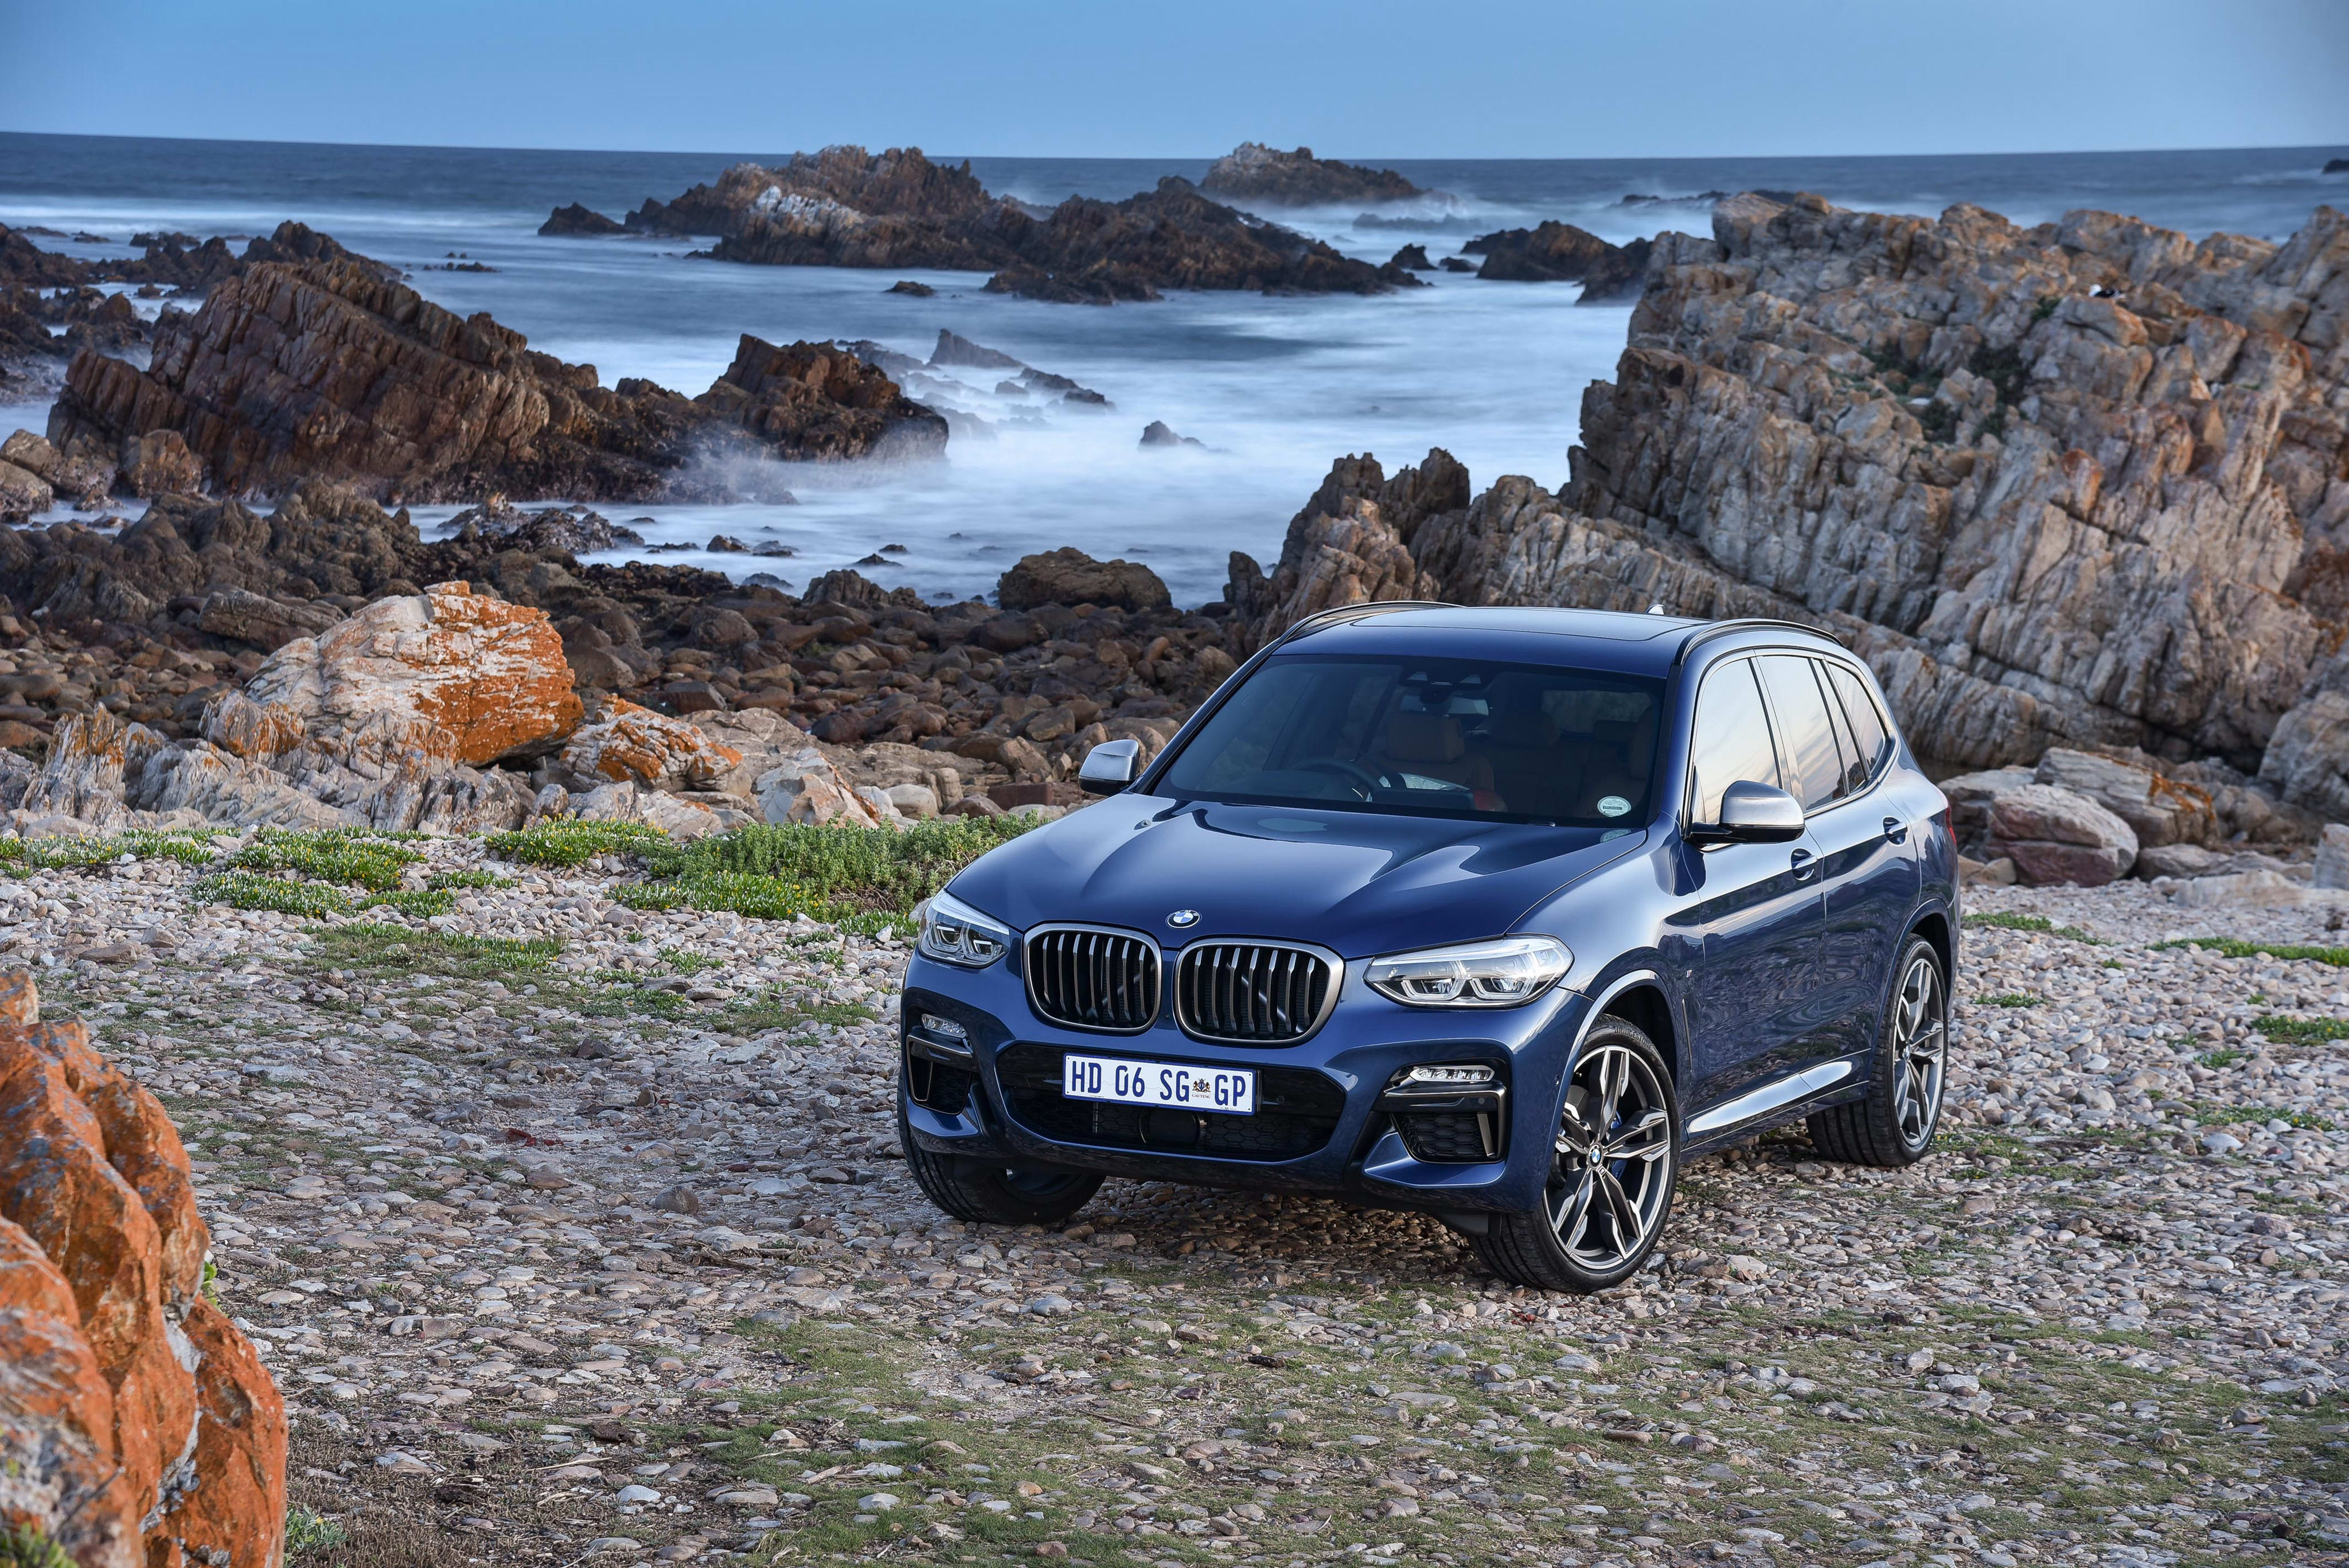 BMW Recalls SUVs for Faulty Steering Pinion